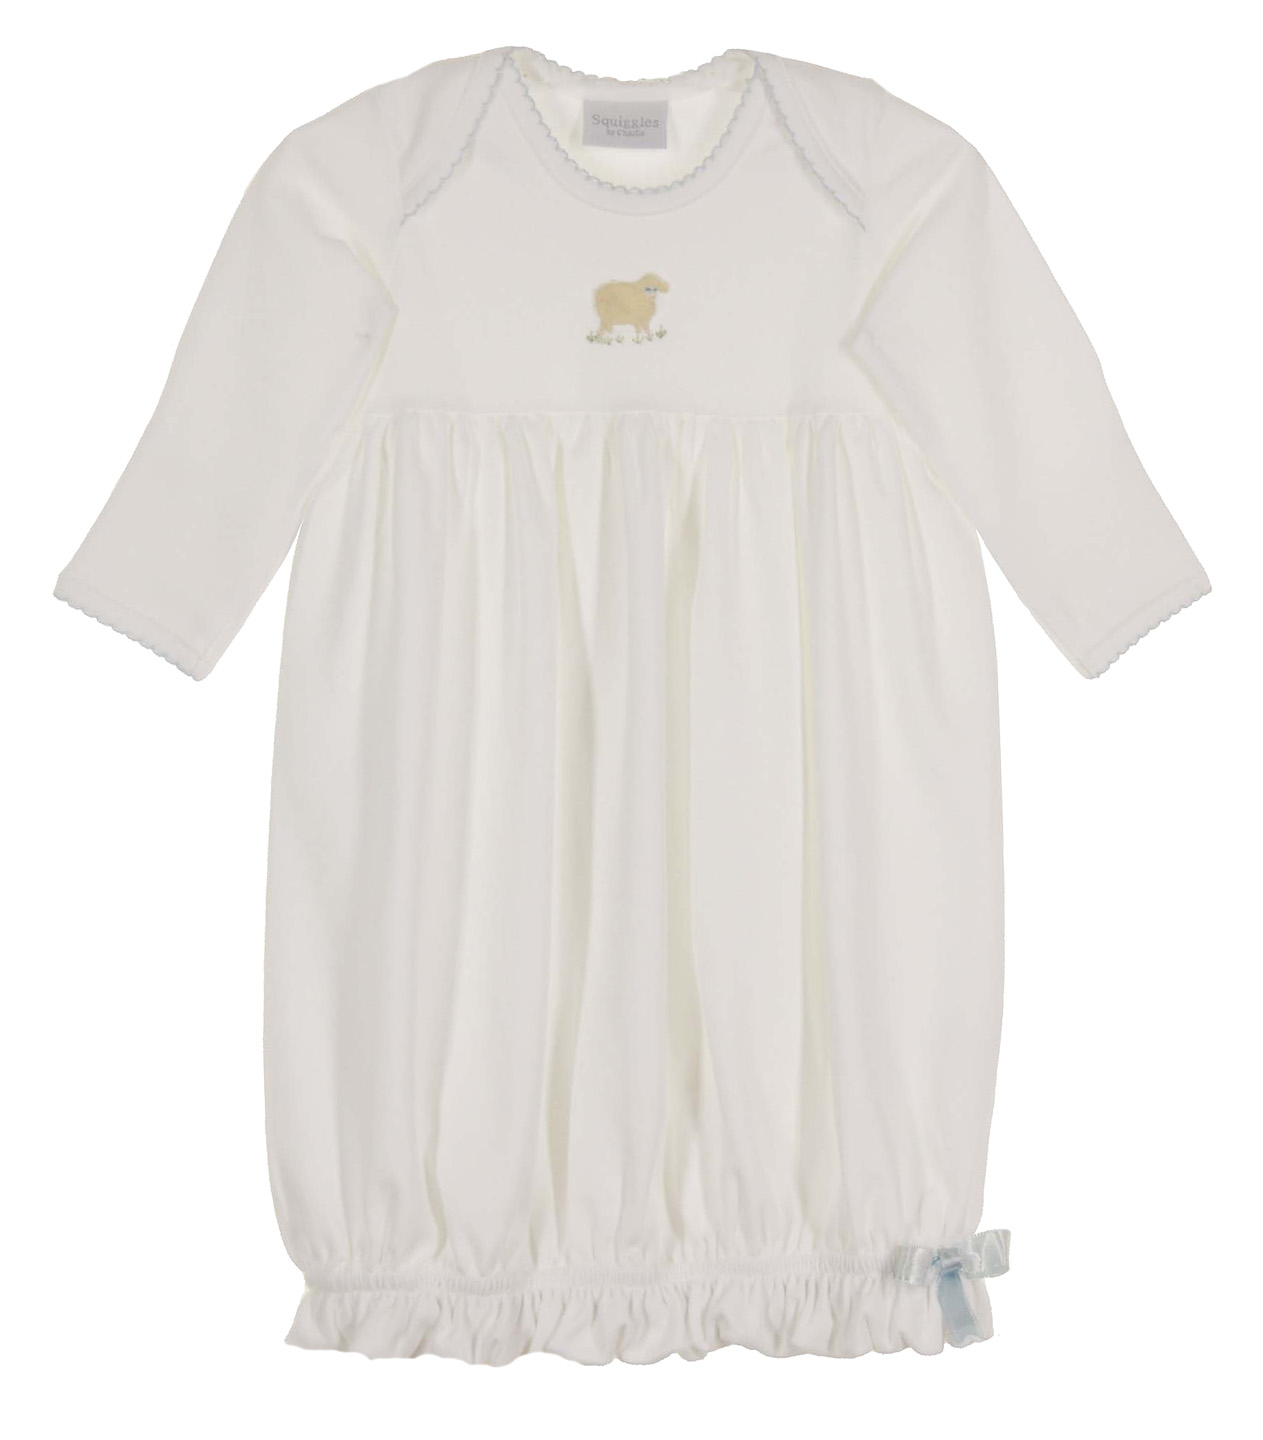 Squiggles by Charlie white pima cotton knit gown with embroidered ...